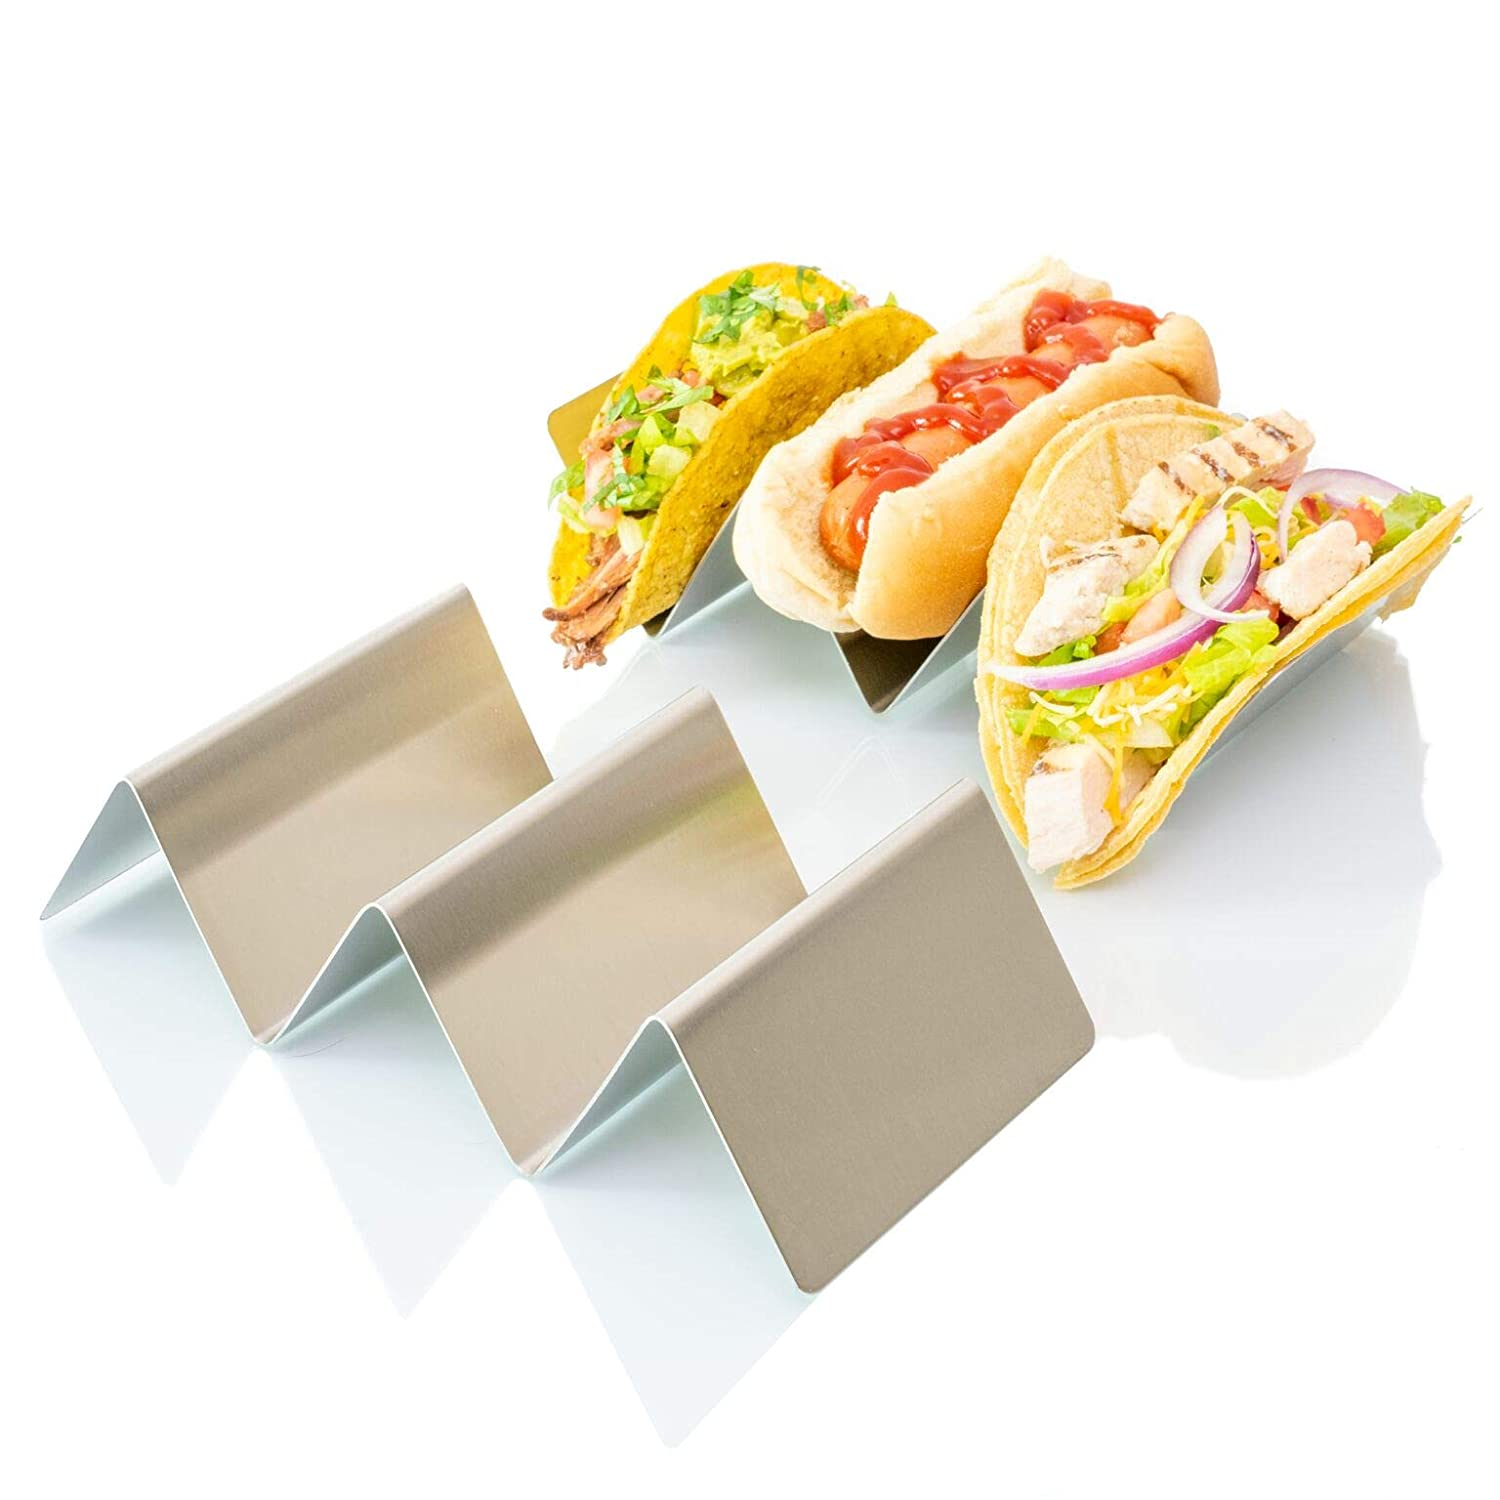 "Taco Holder Stand Rack, Stainless Steel 4-Pack, Mexican Food Serving Tray. Stands Hold Up To 3 Tacos, Burritos, Hot Dog, And More!. Grill And Oven Use Safe, Dishwasher Safe For Easy Cleaning, 4"" x 8"""